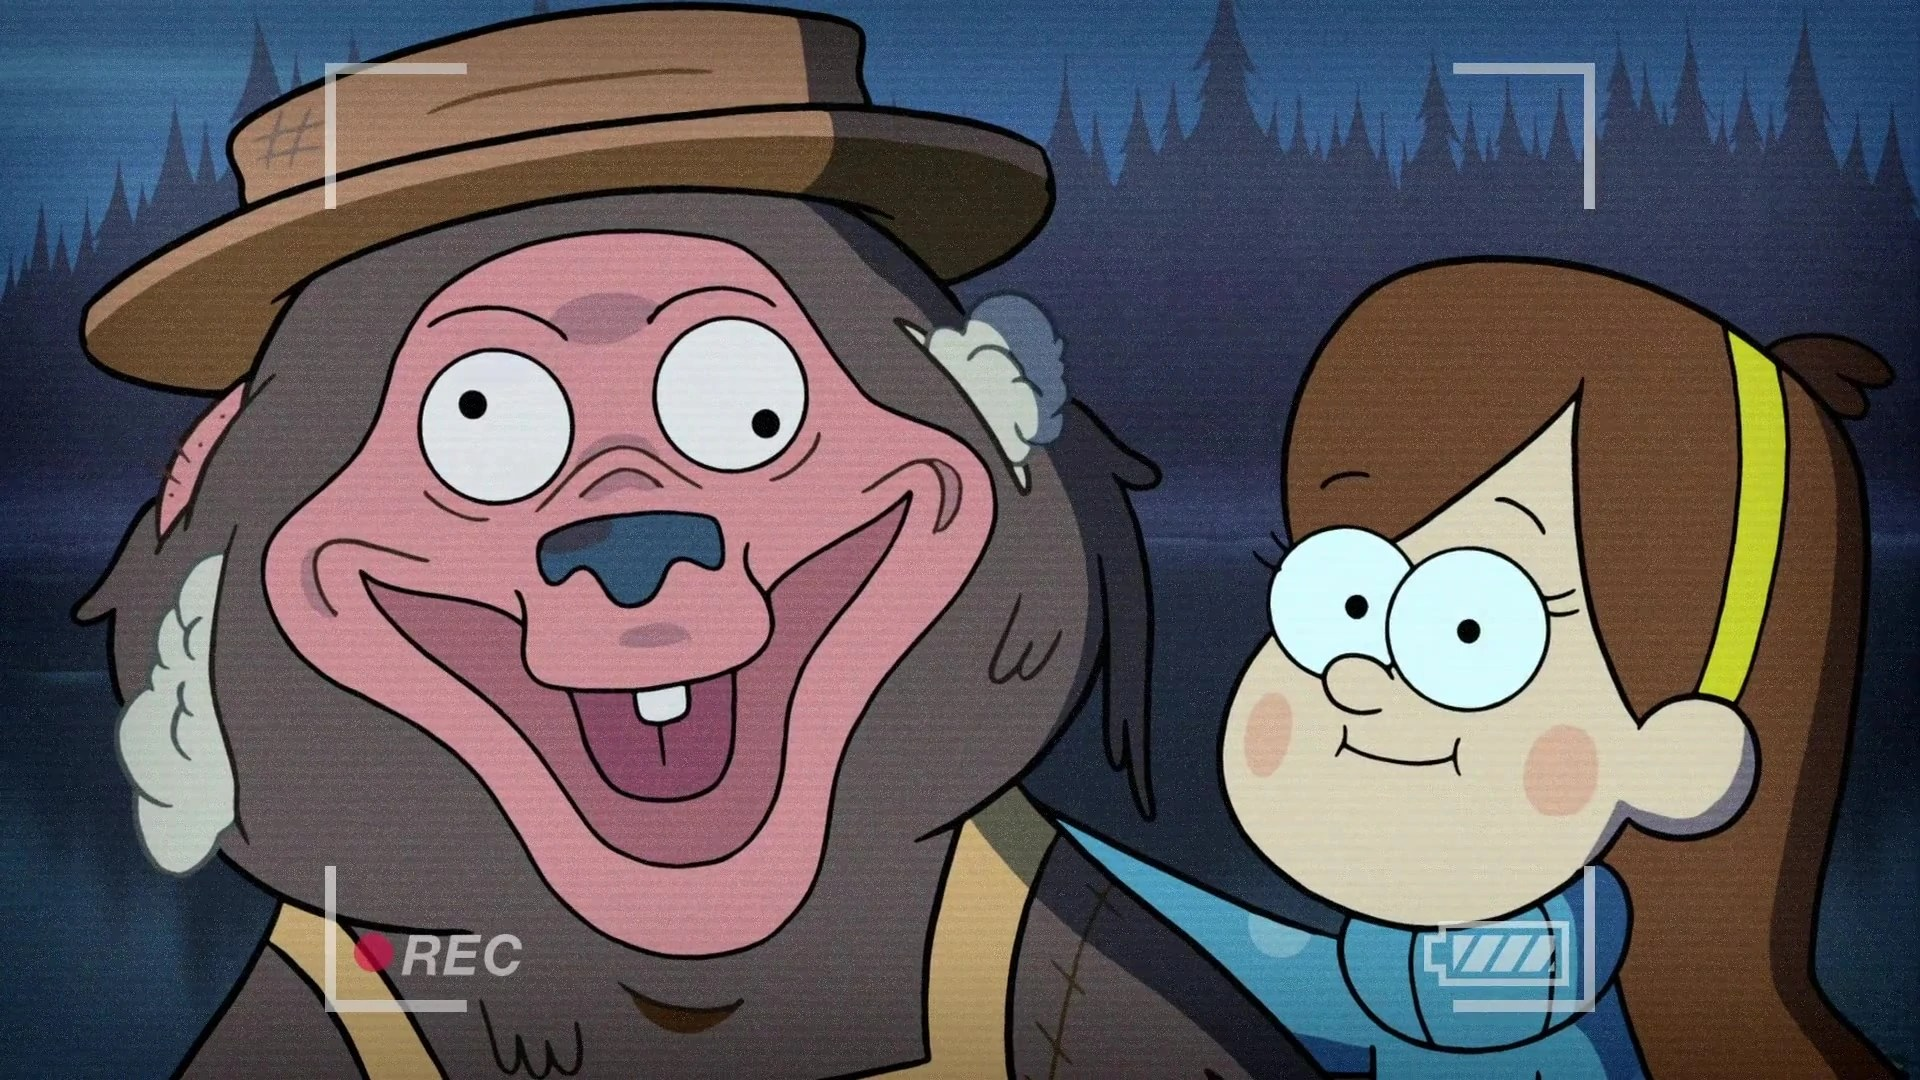 Gravity Falls Dipper And Wendy Wallpaper View Topic Gravity Falls Fanclub V 2 New Poll